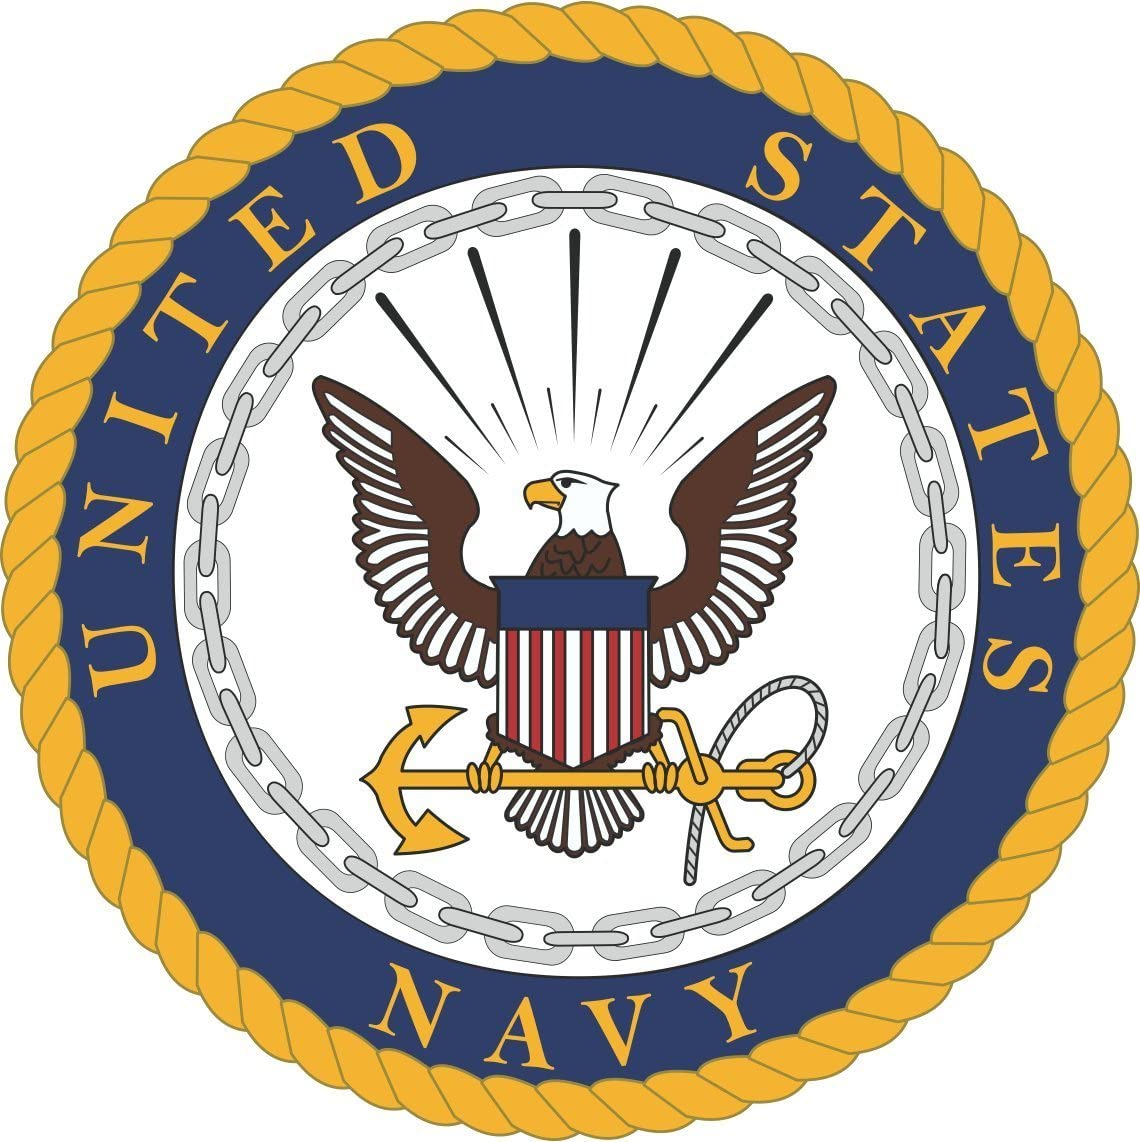 MAGNET US Navy Department Seal Decal Magnetic Sticker 5.5